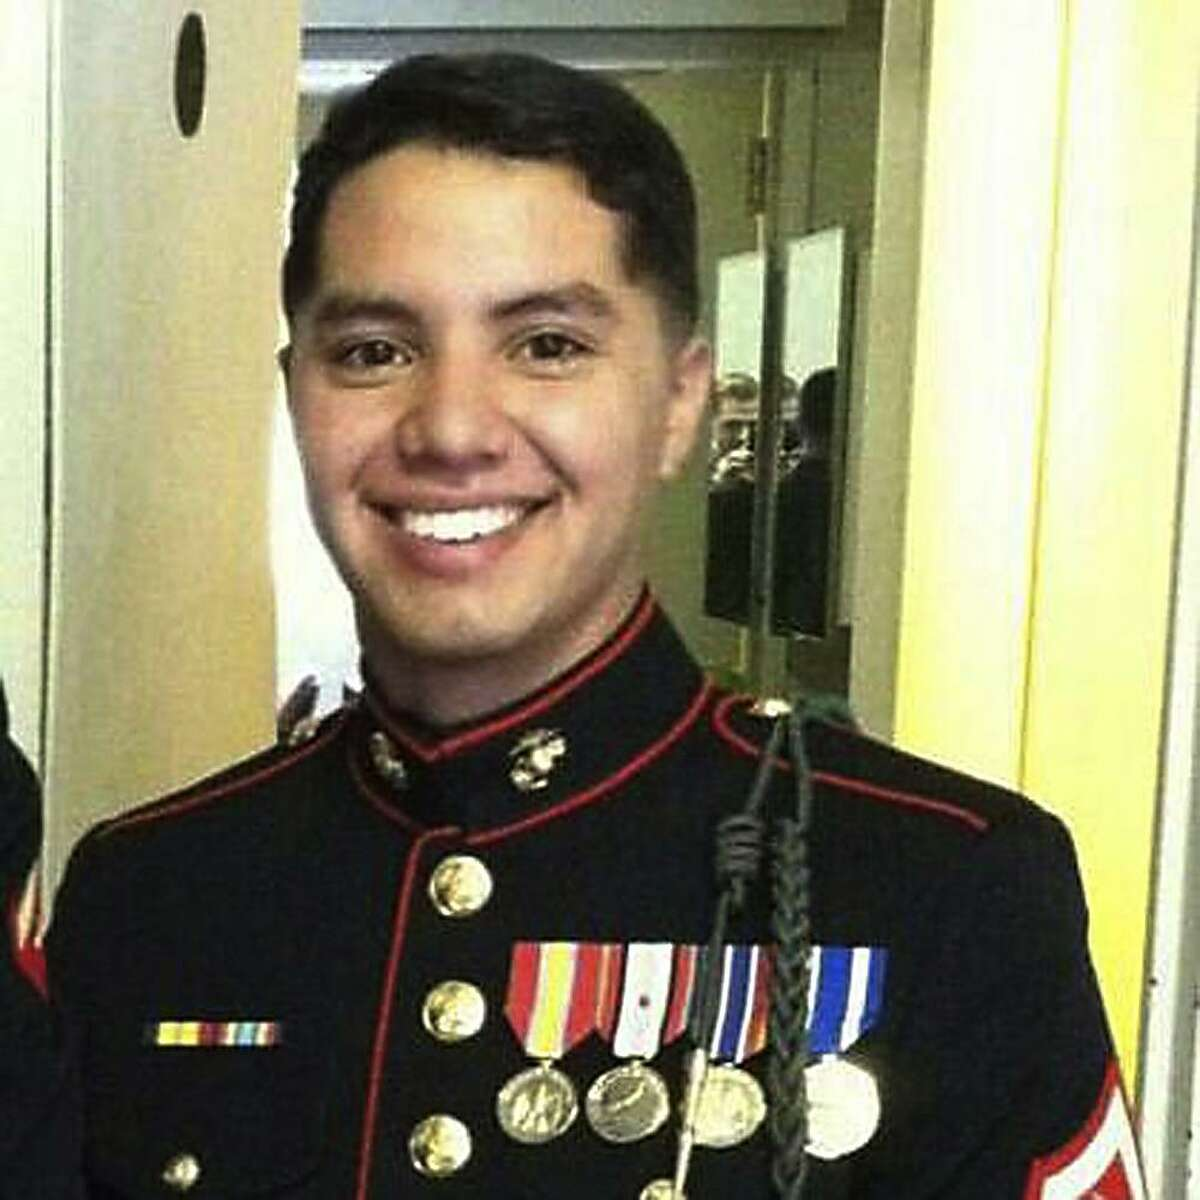 Marine vet Mike Gerardo credits the veterans court in Tarrant County with saving his life, which had spiraled out of control.